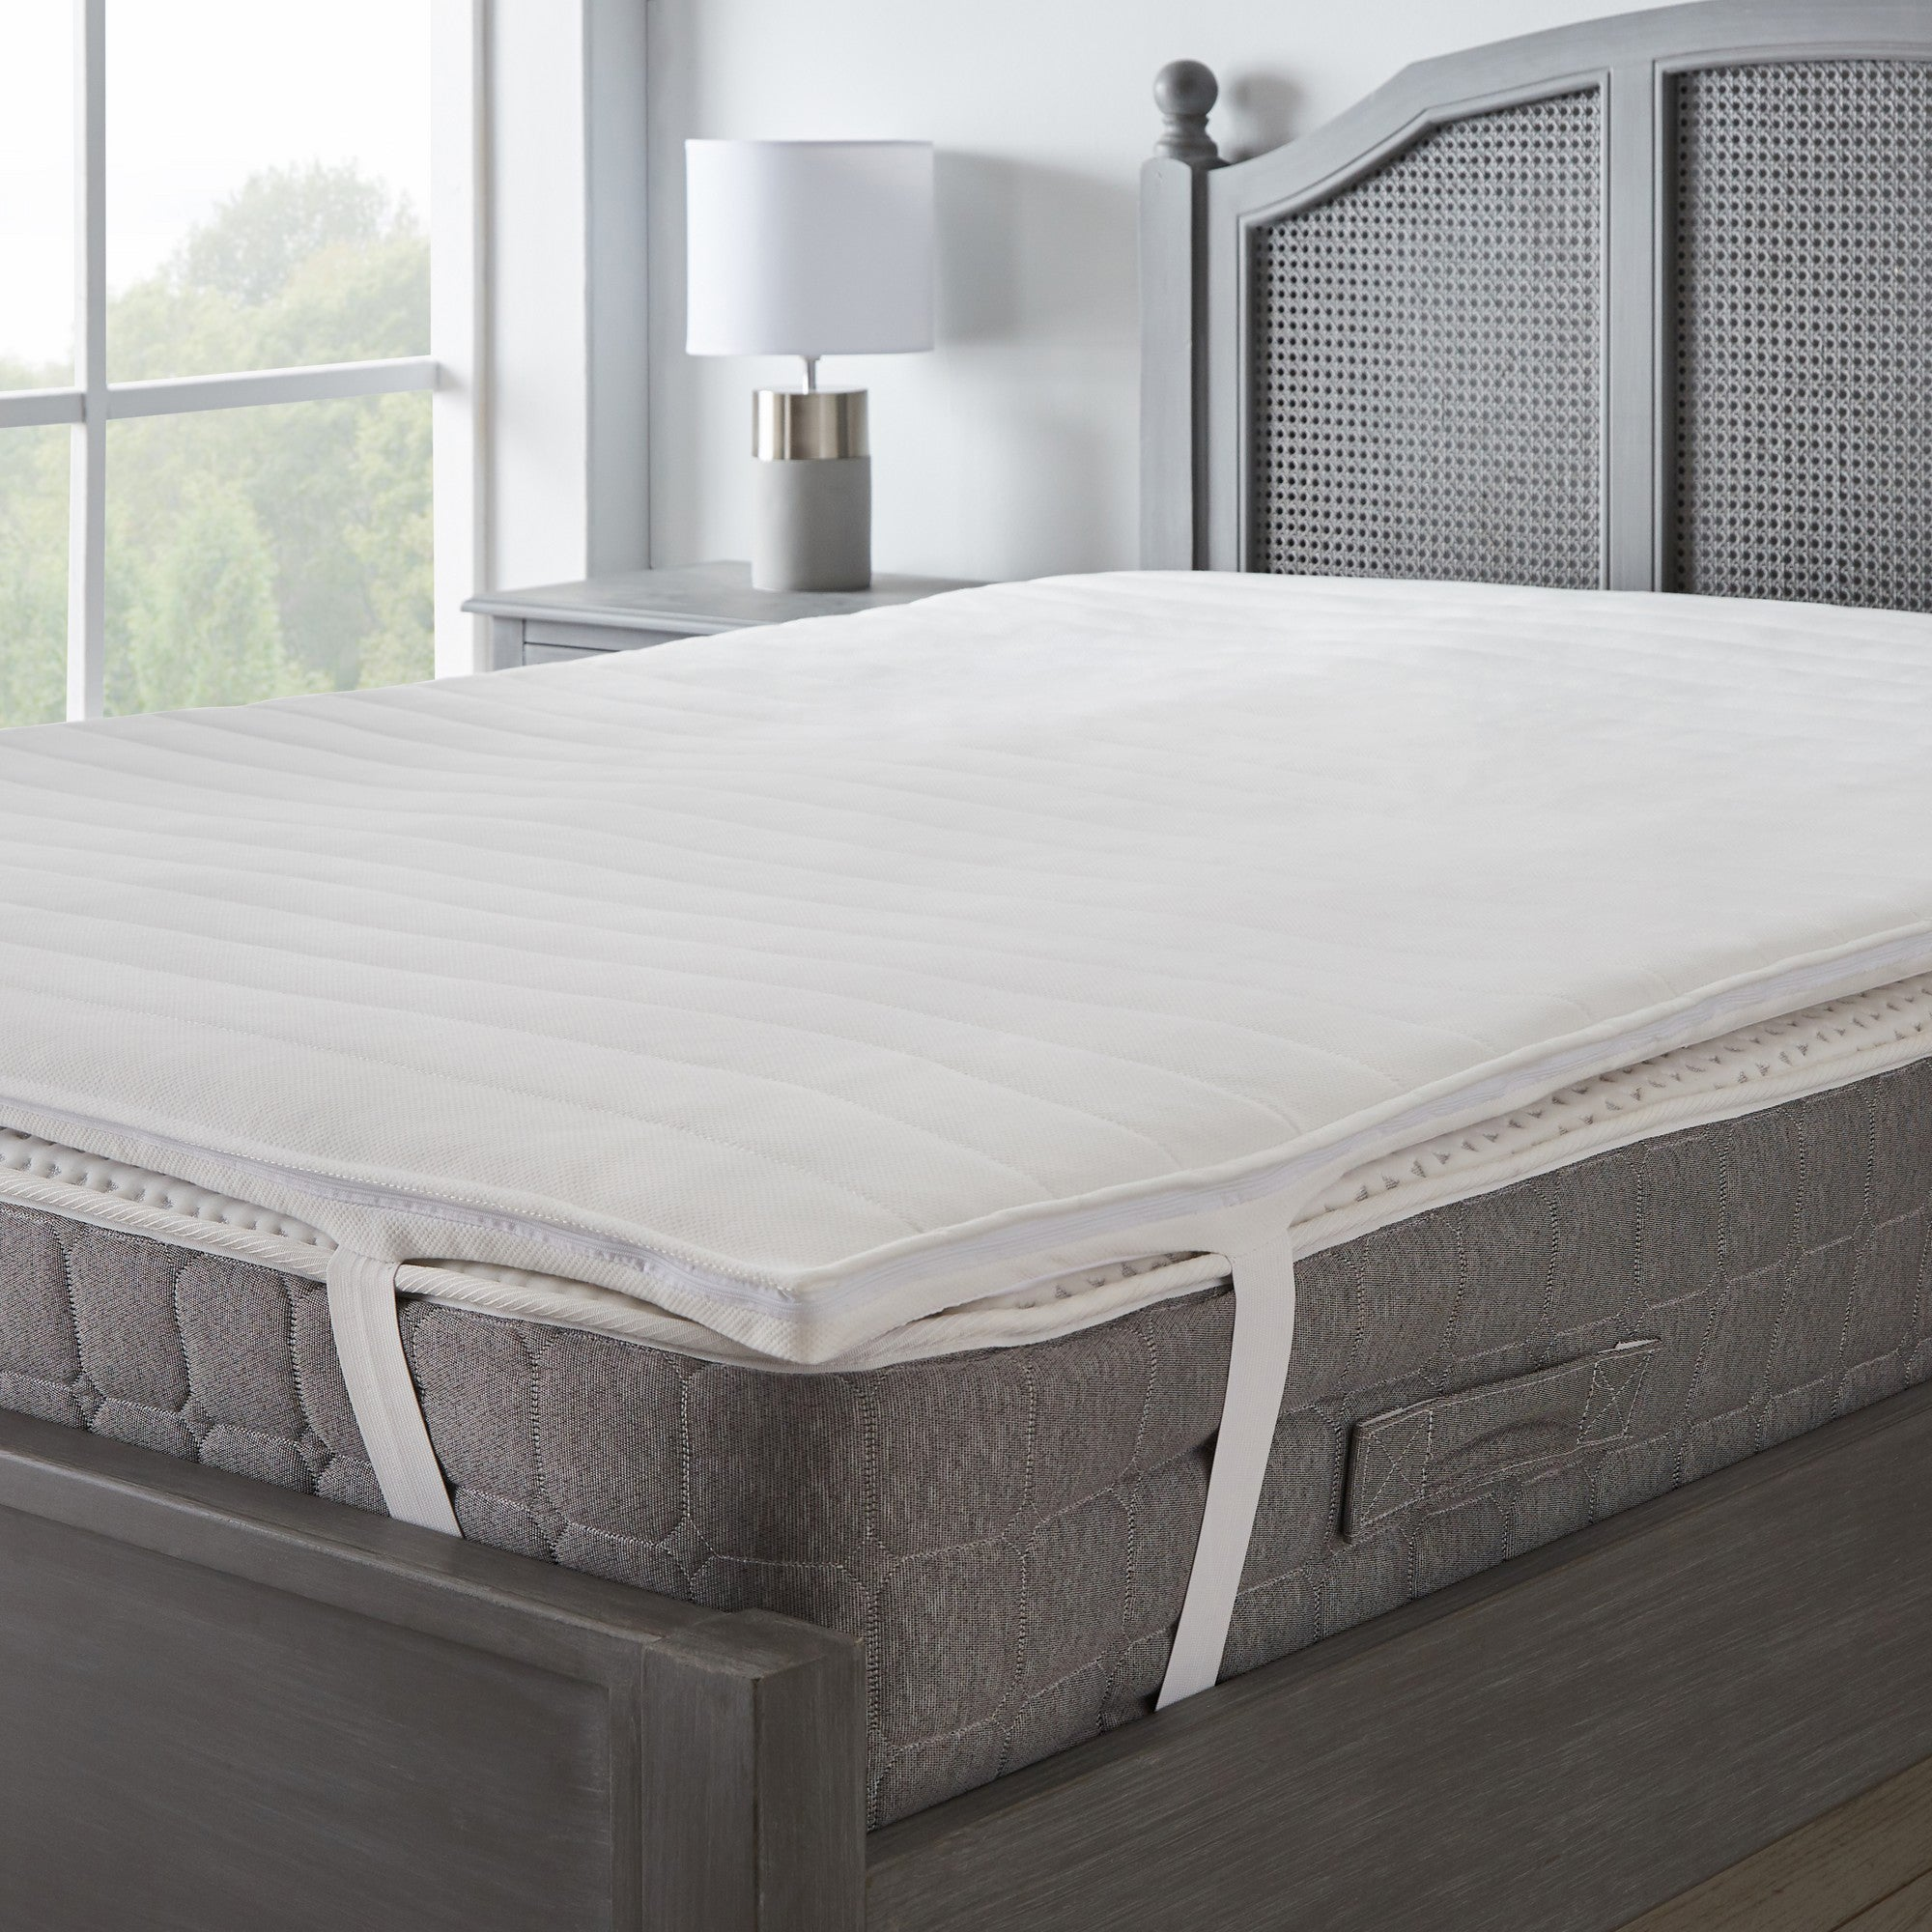 cool mattress topper shop for cheap home textiles and. Black Bedroom Furniture Sets. Home Design Ideas